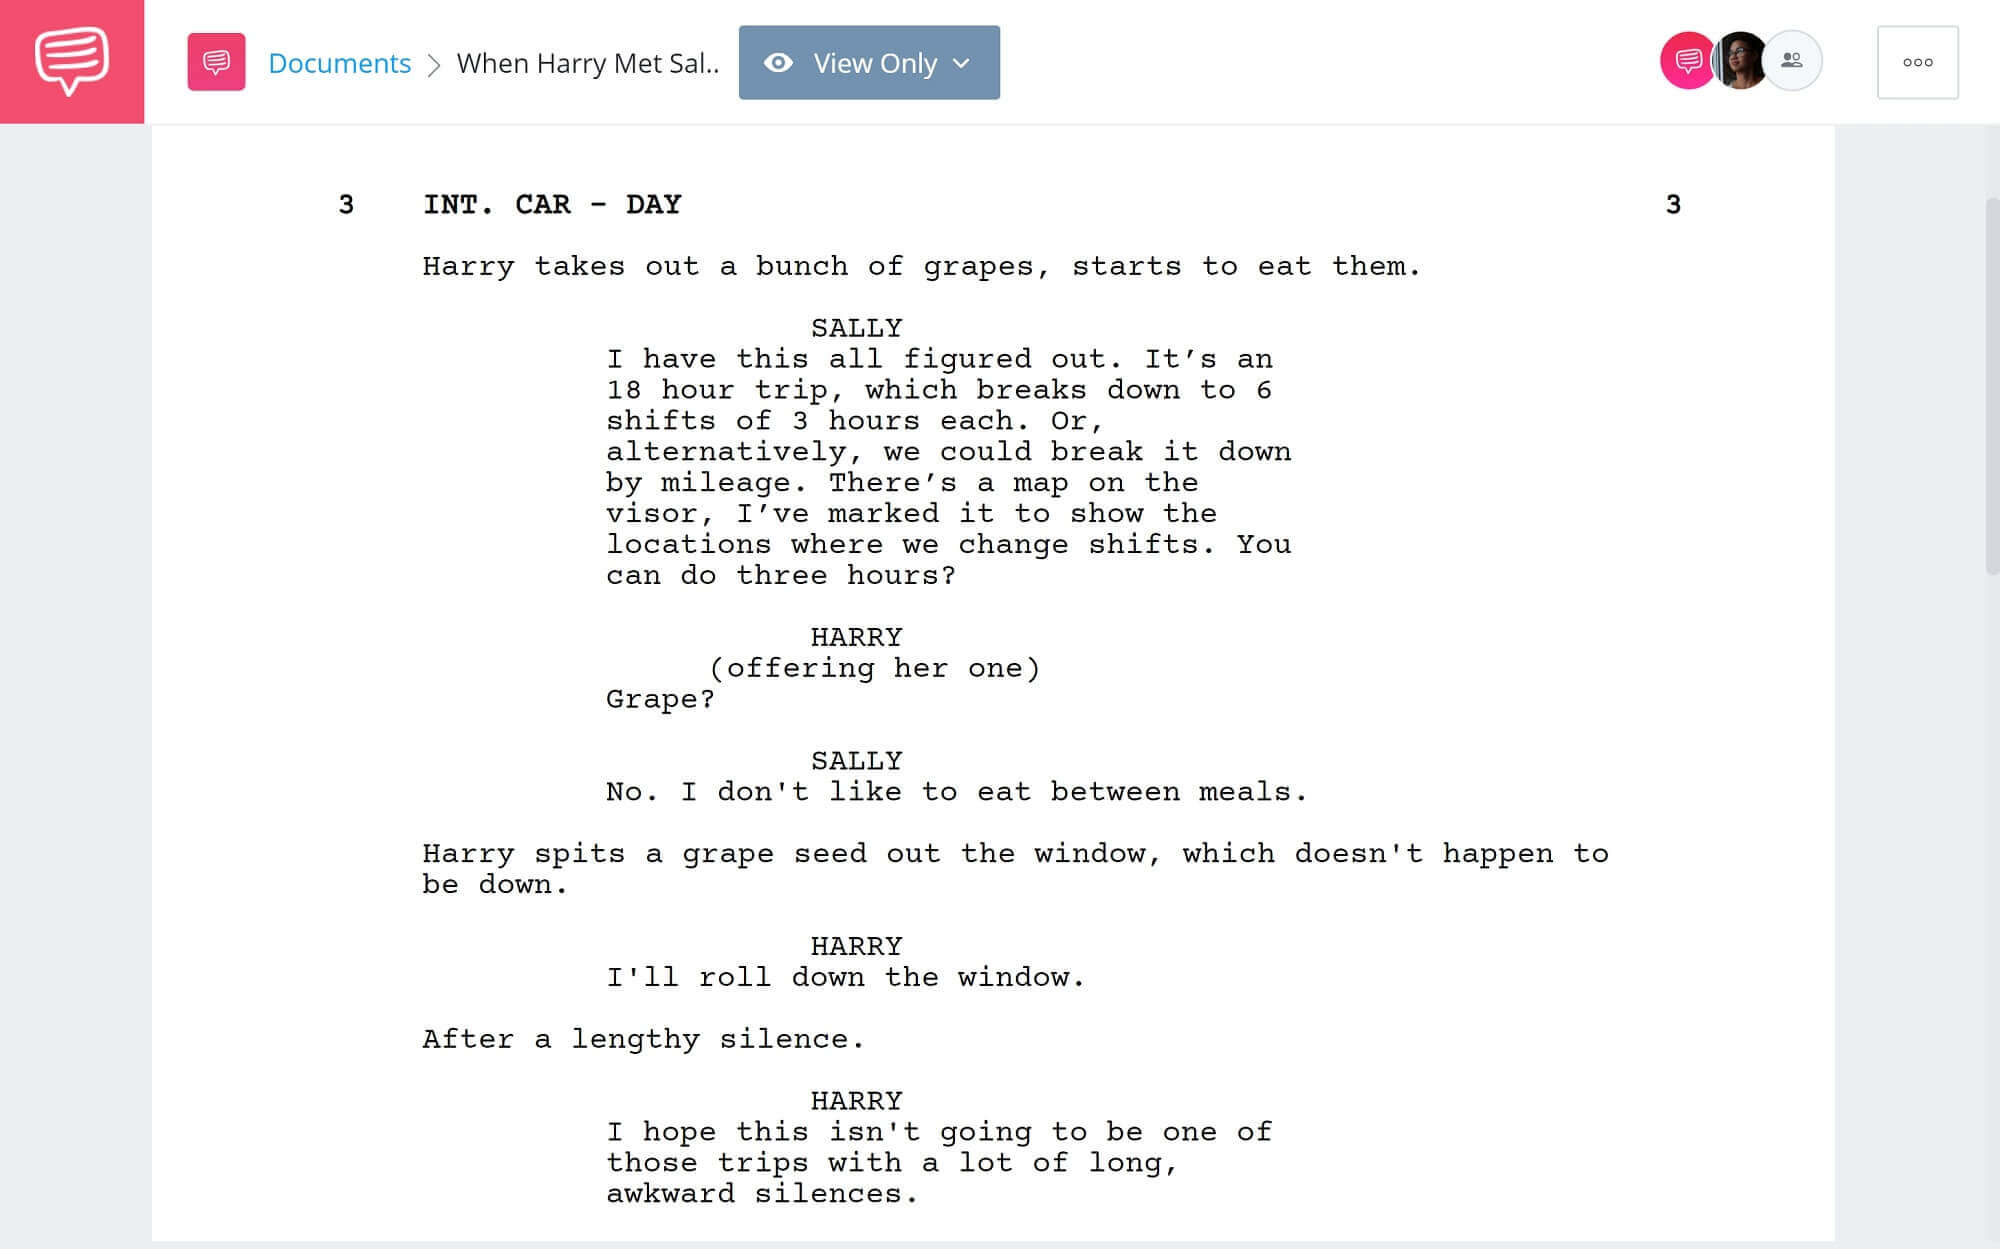 Meet Cute - When Harry Met Sally Scene - StudioBinder Screenwriting Software